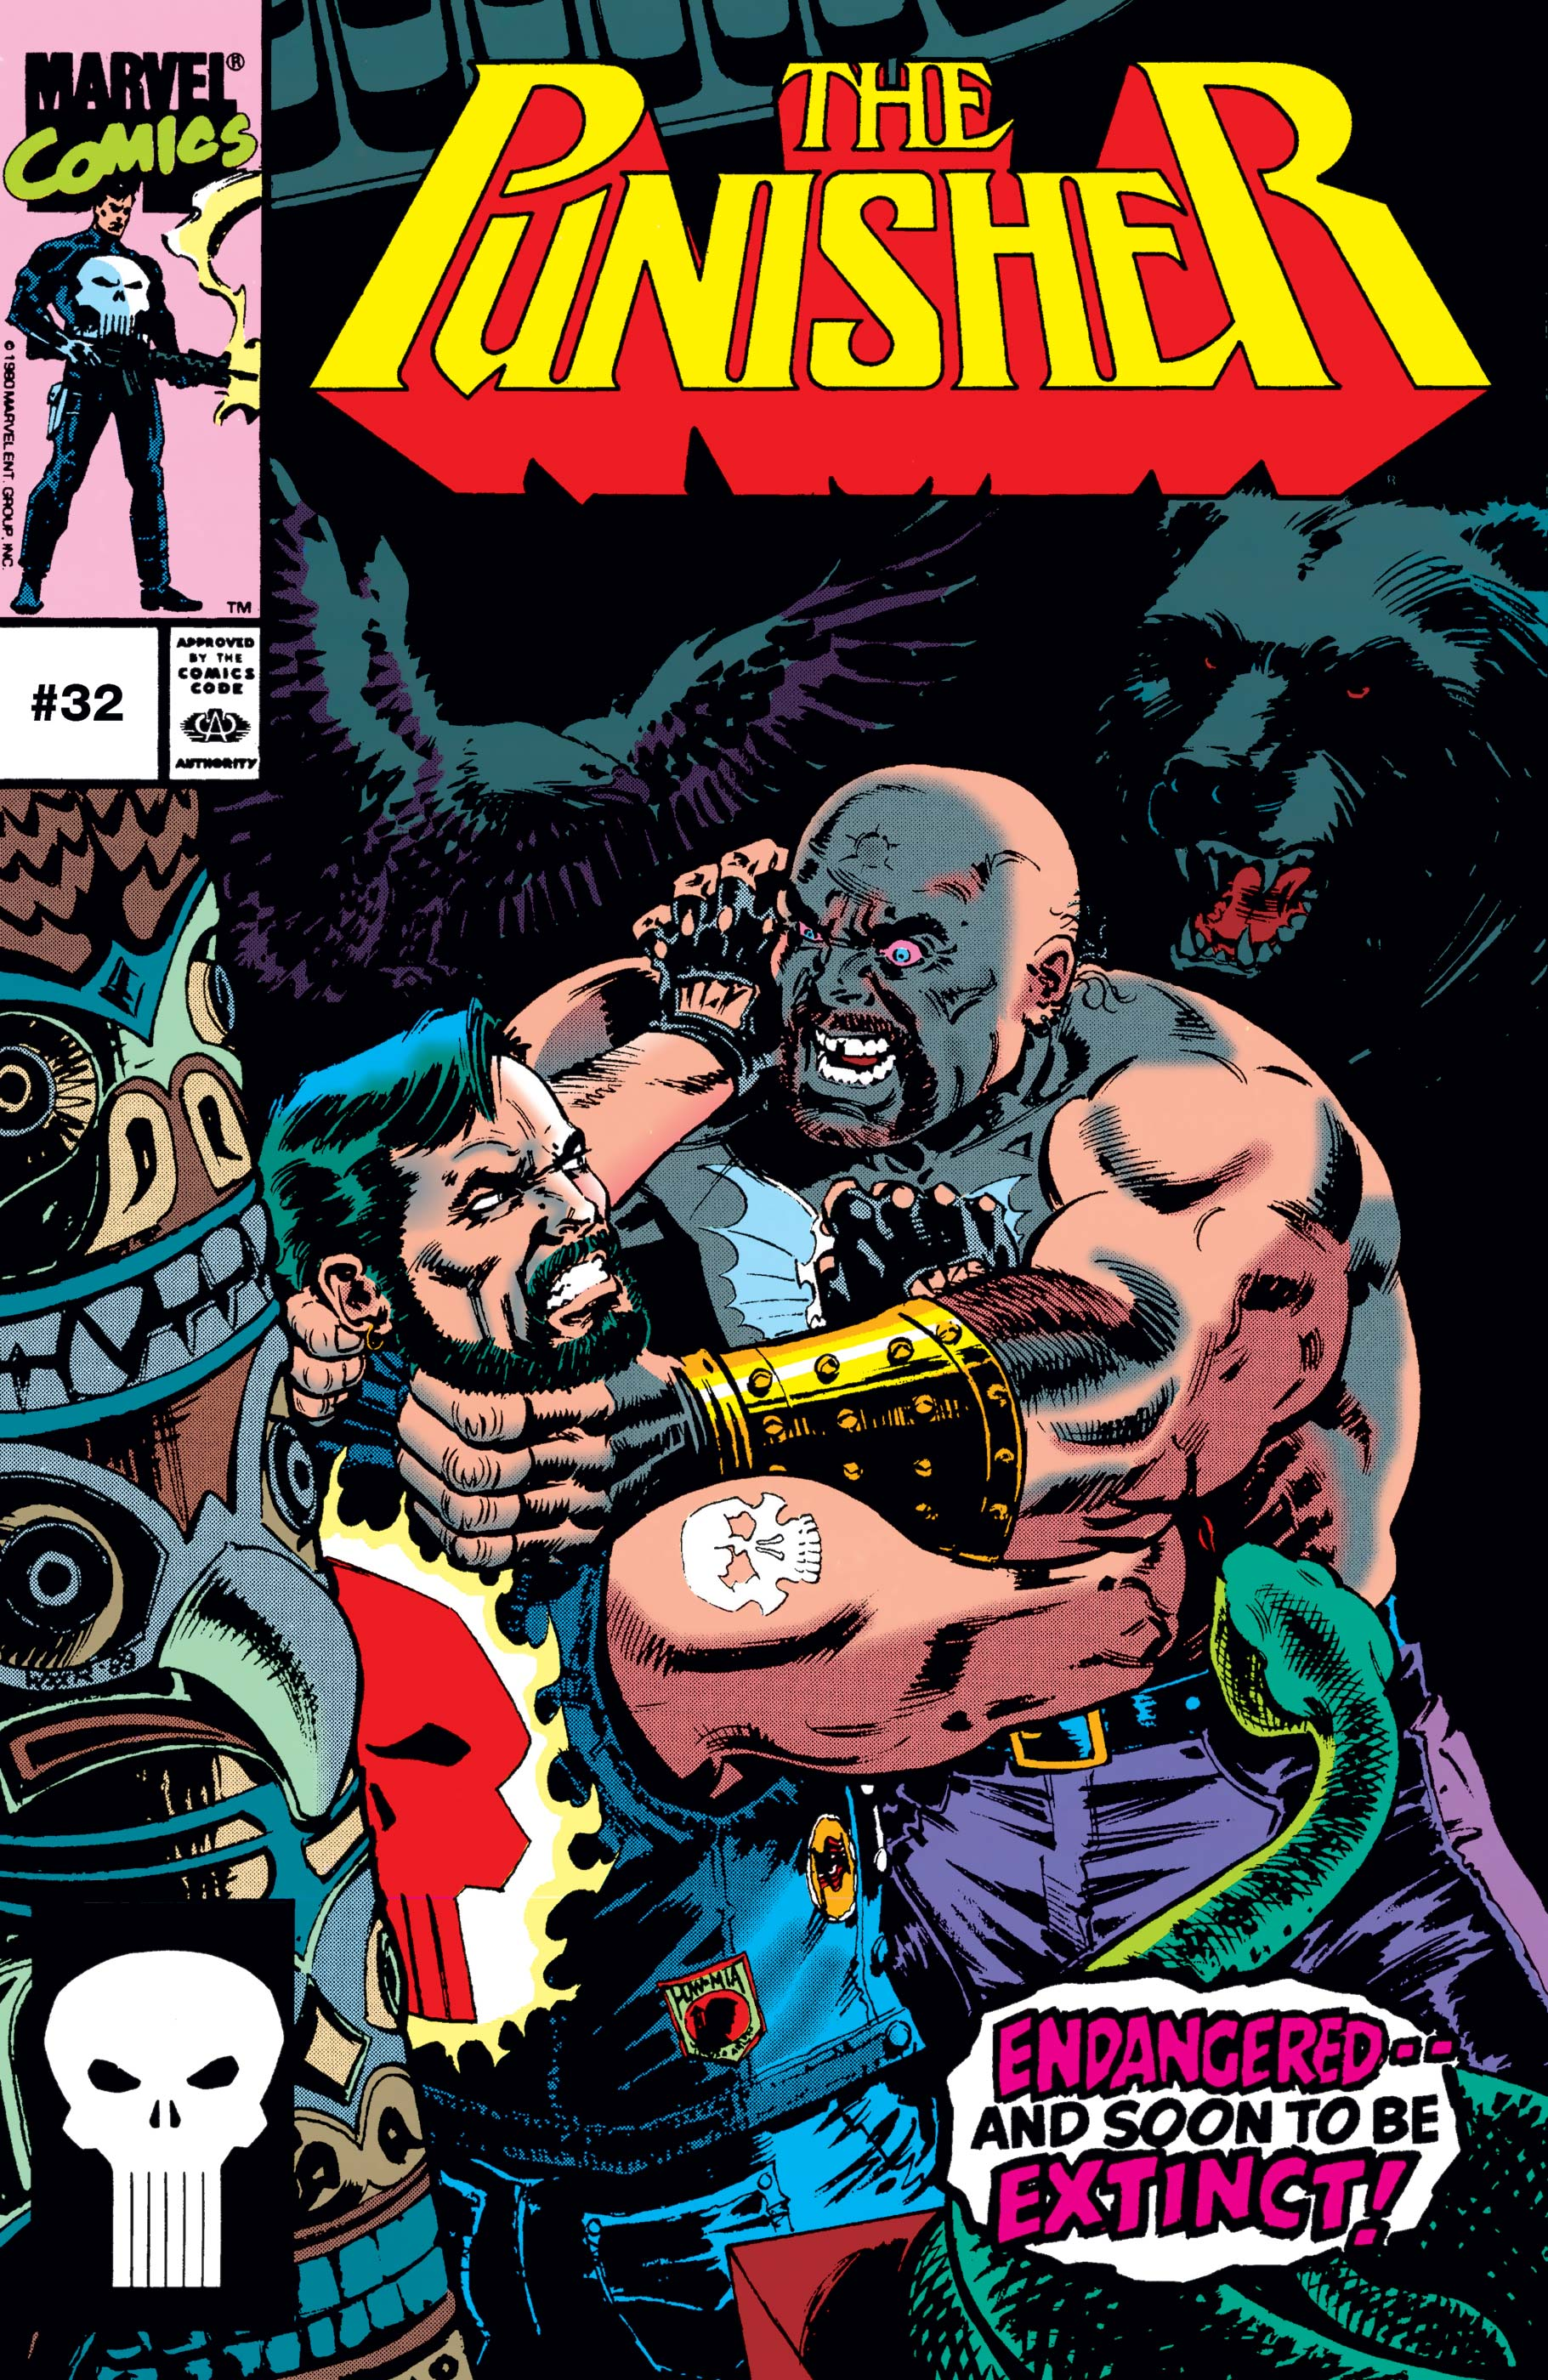 The Punisher (1987) #32